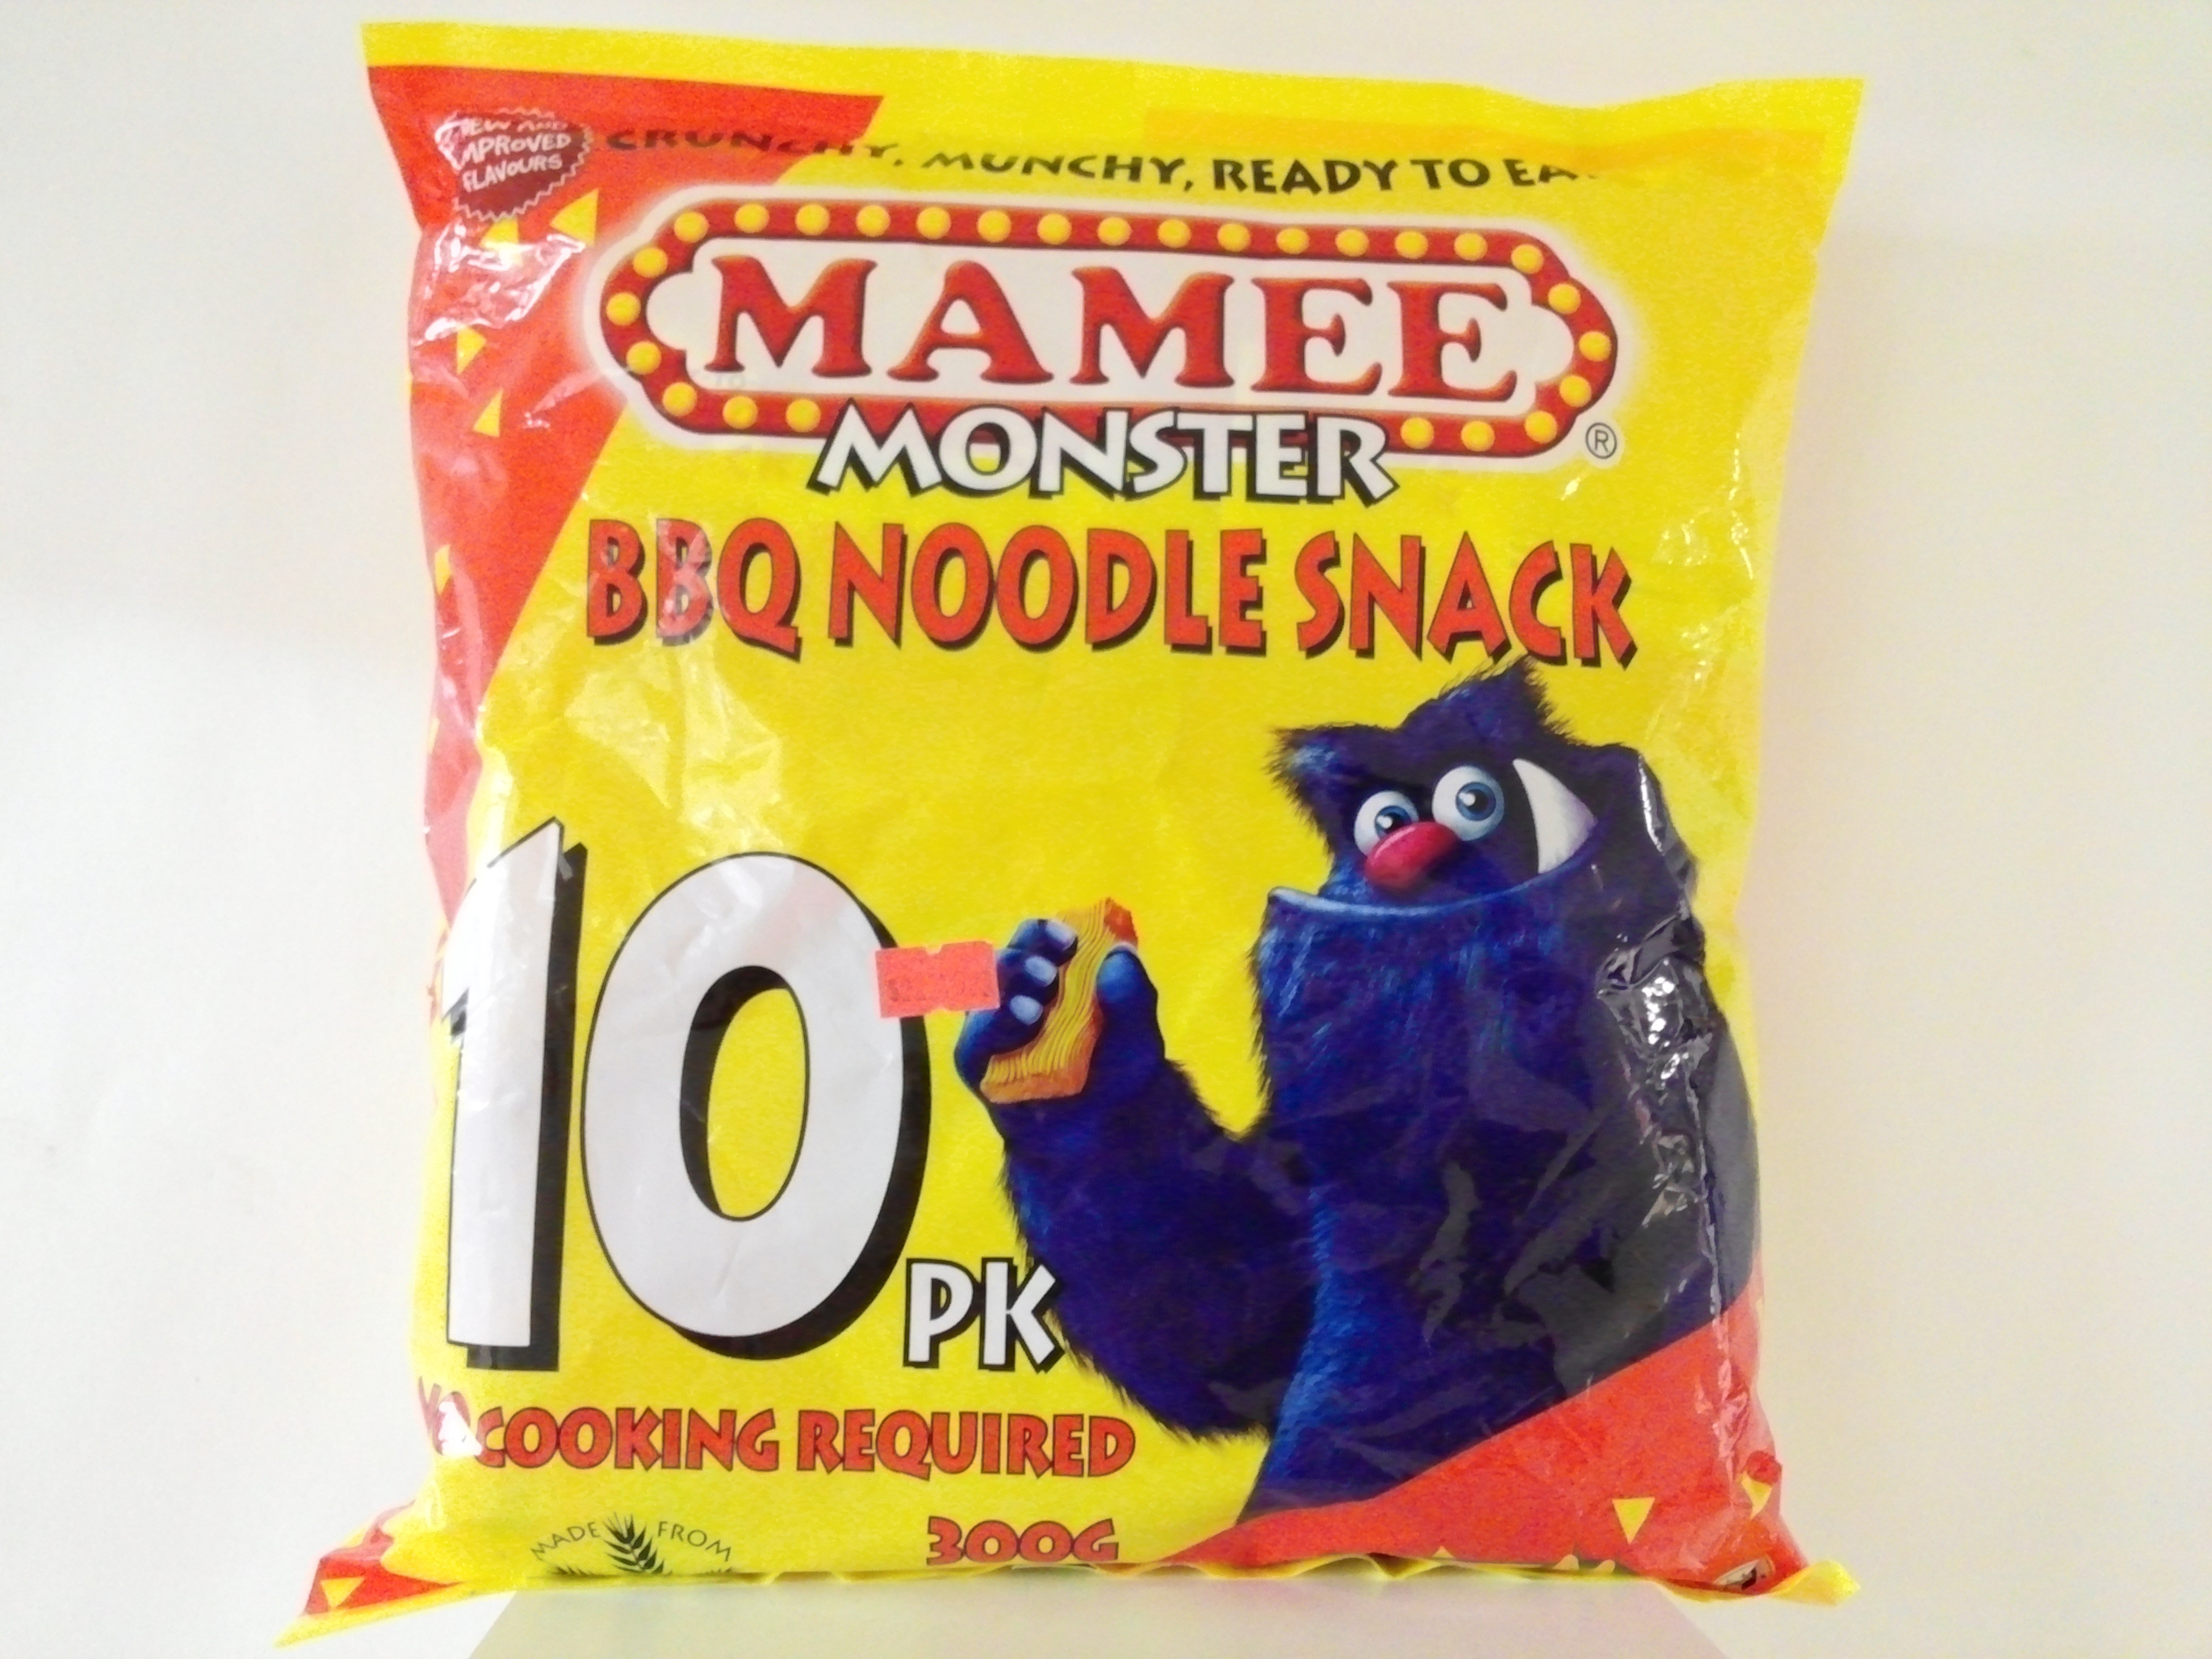 Mamee's Monster BBQ Noodle Snack10 pk - 300 grm